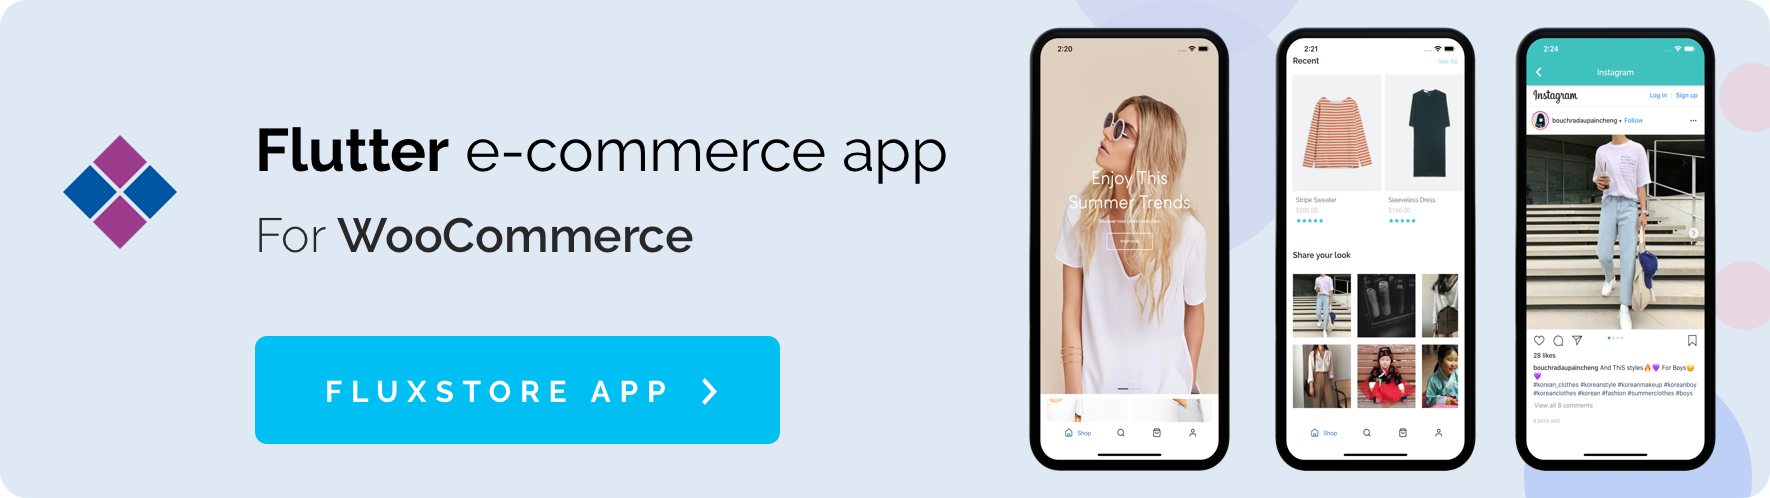 Fluxstore Multi Vendor - Flutter E-commerce Full App - 30